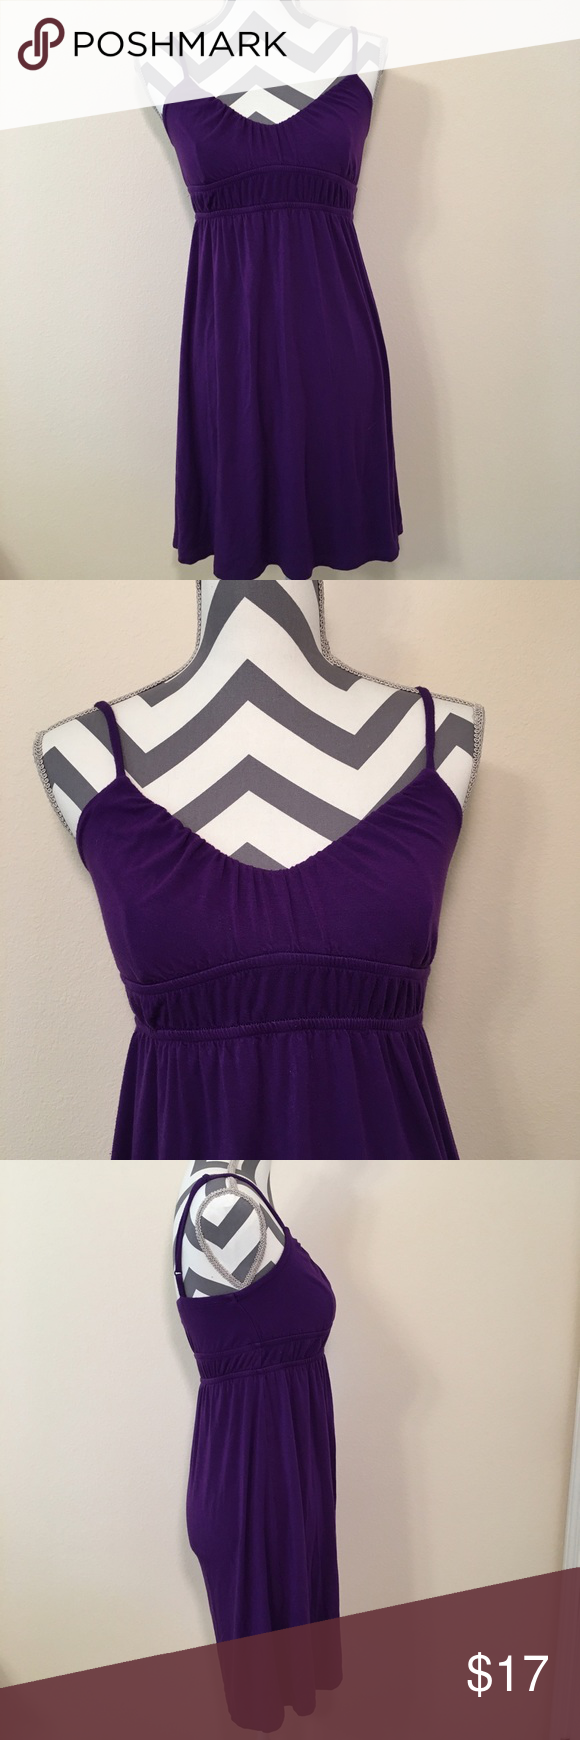 Purple Spaghetti Strap Dress Purple Spaghetti Strap Dress Size ...